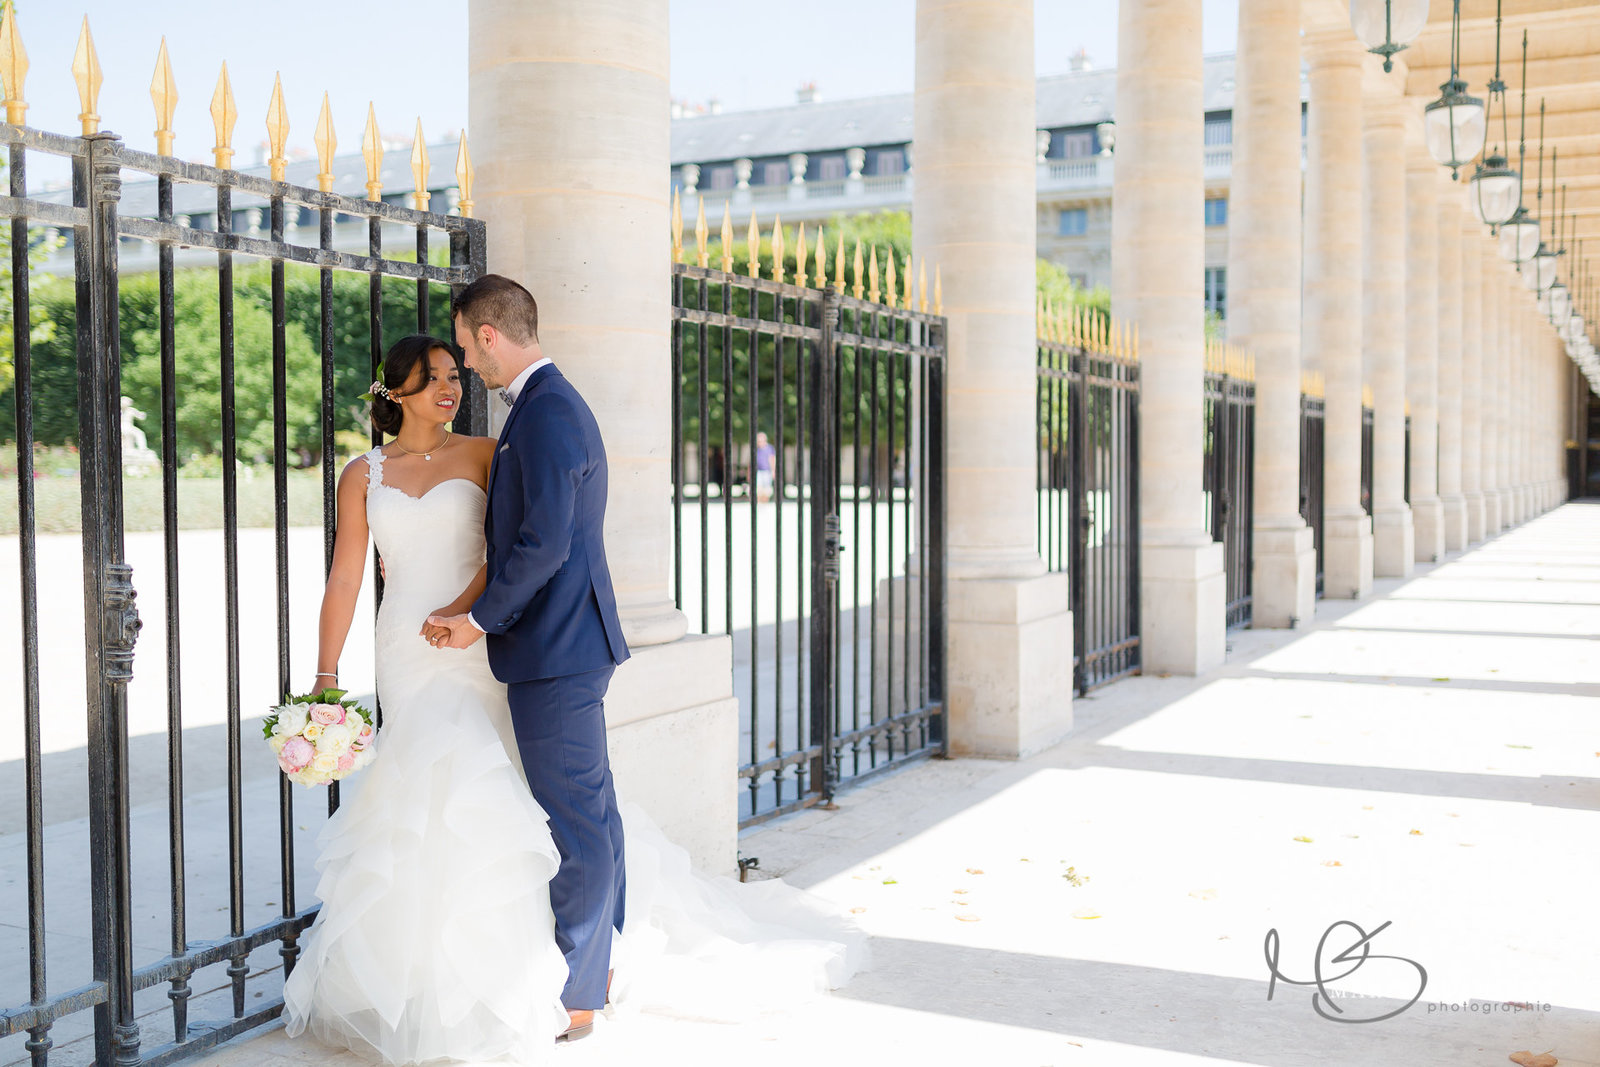 Mariage_Celine&Axel_11072015-0023